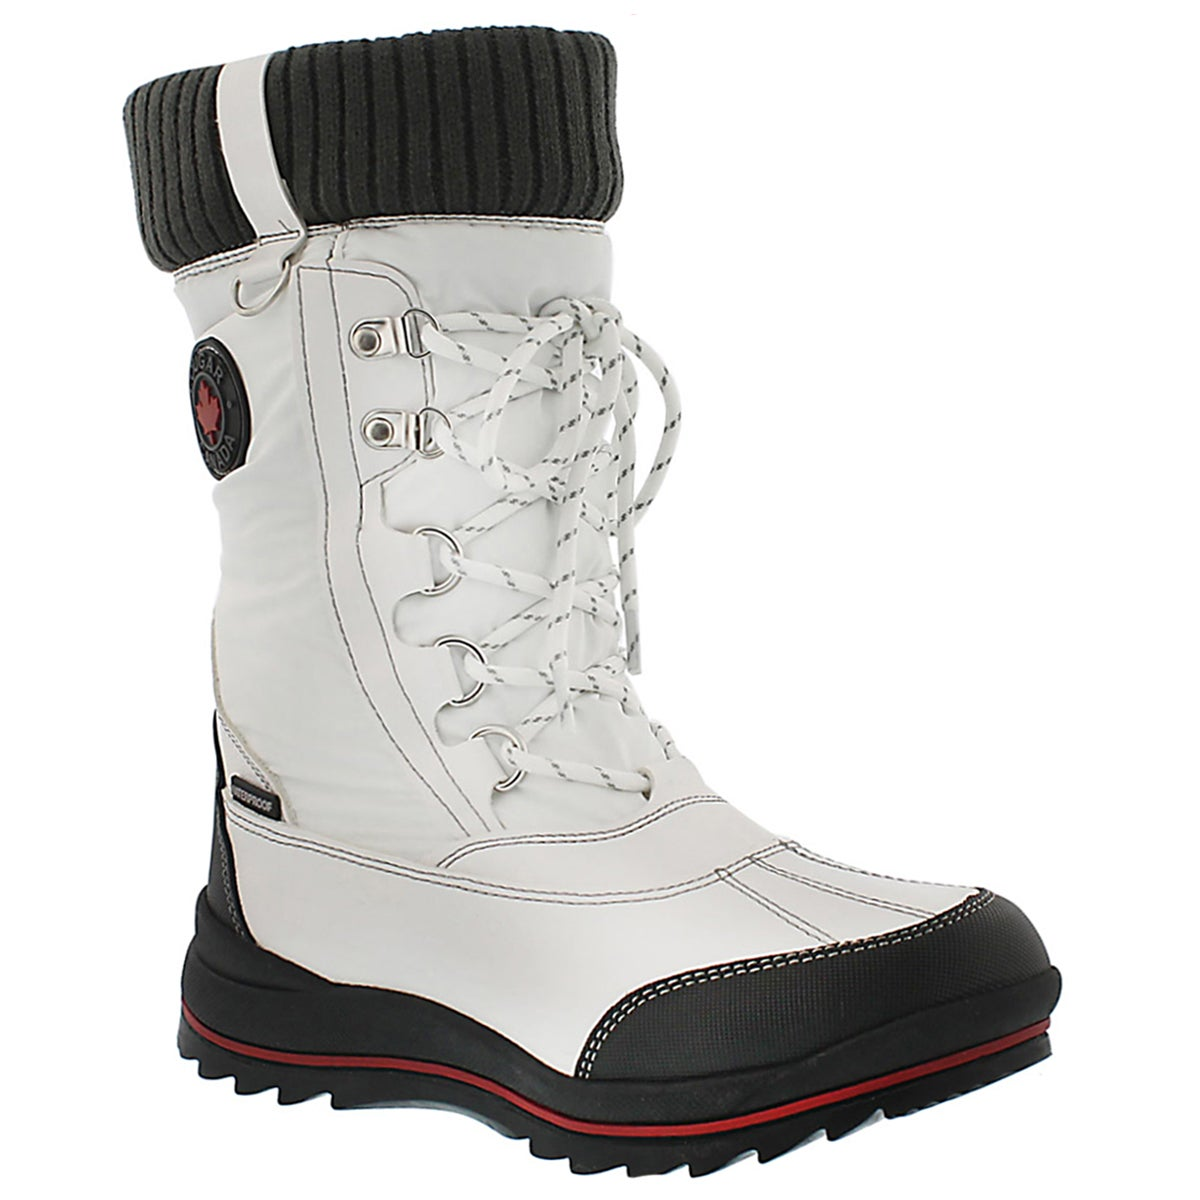 Lds Como wht wtprf pull on winter boot